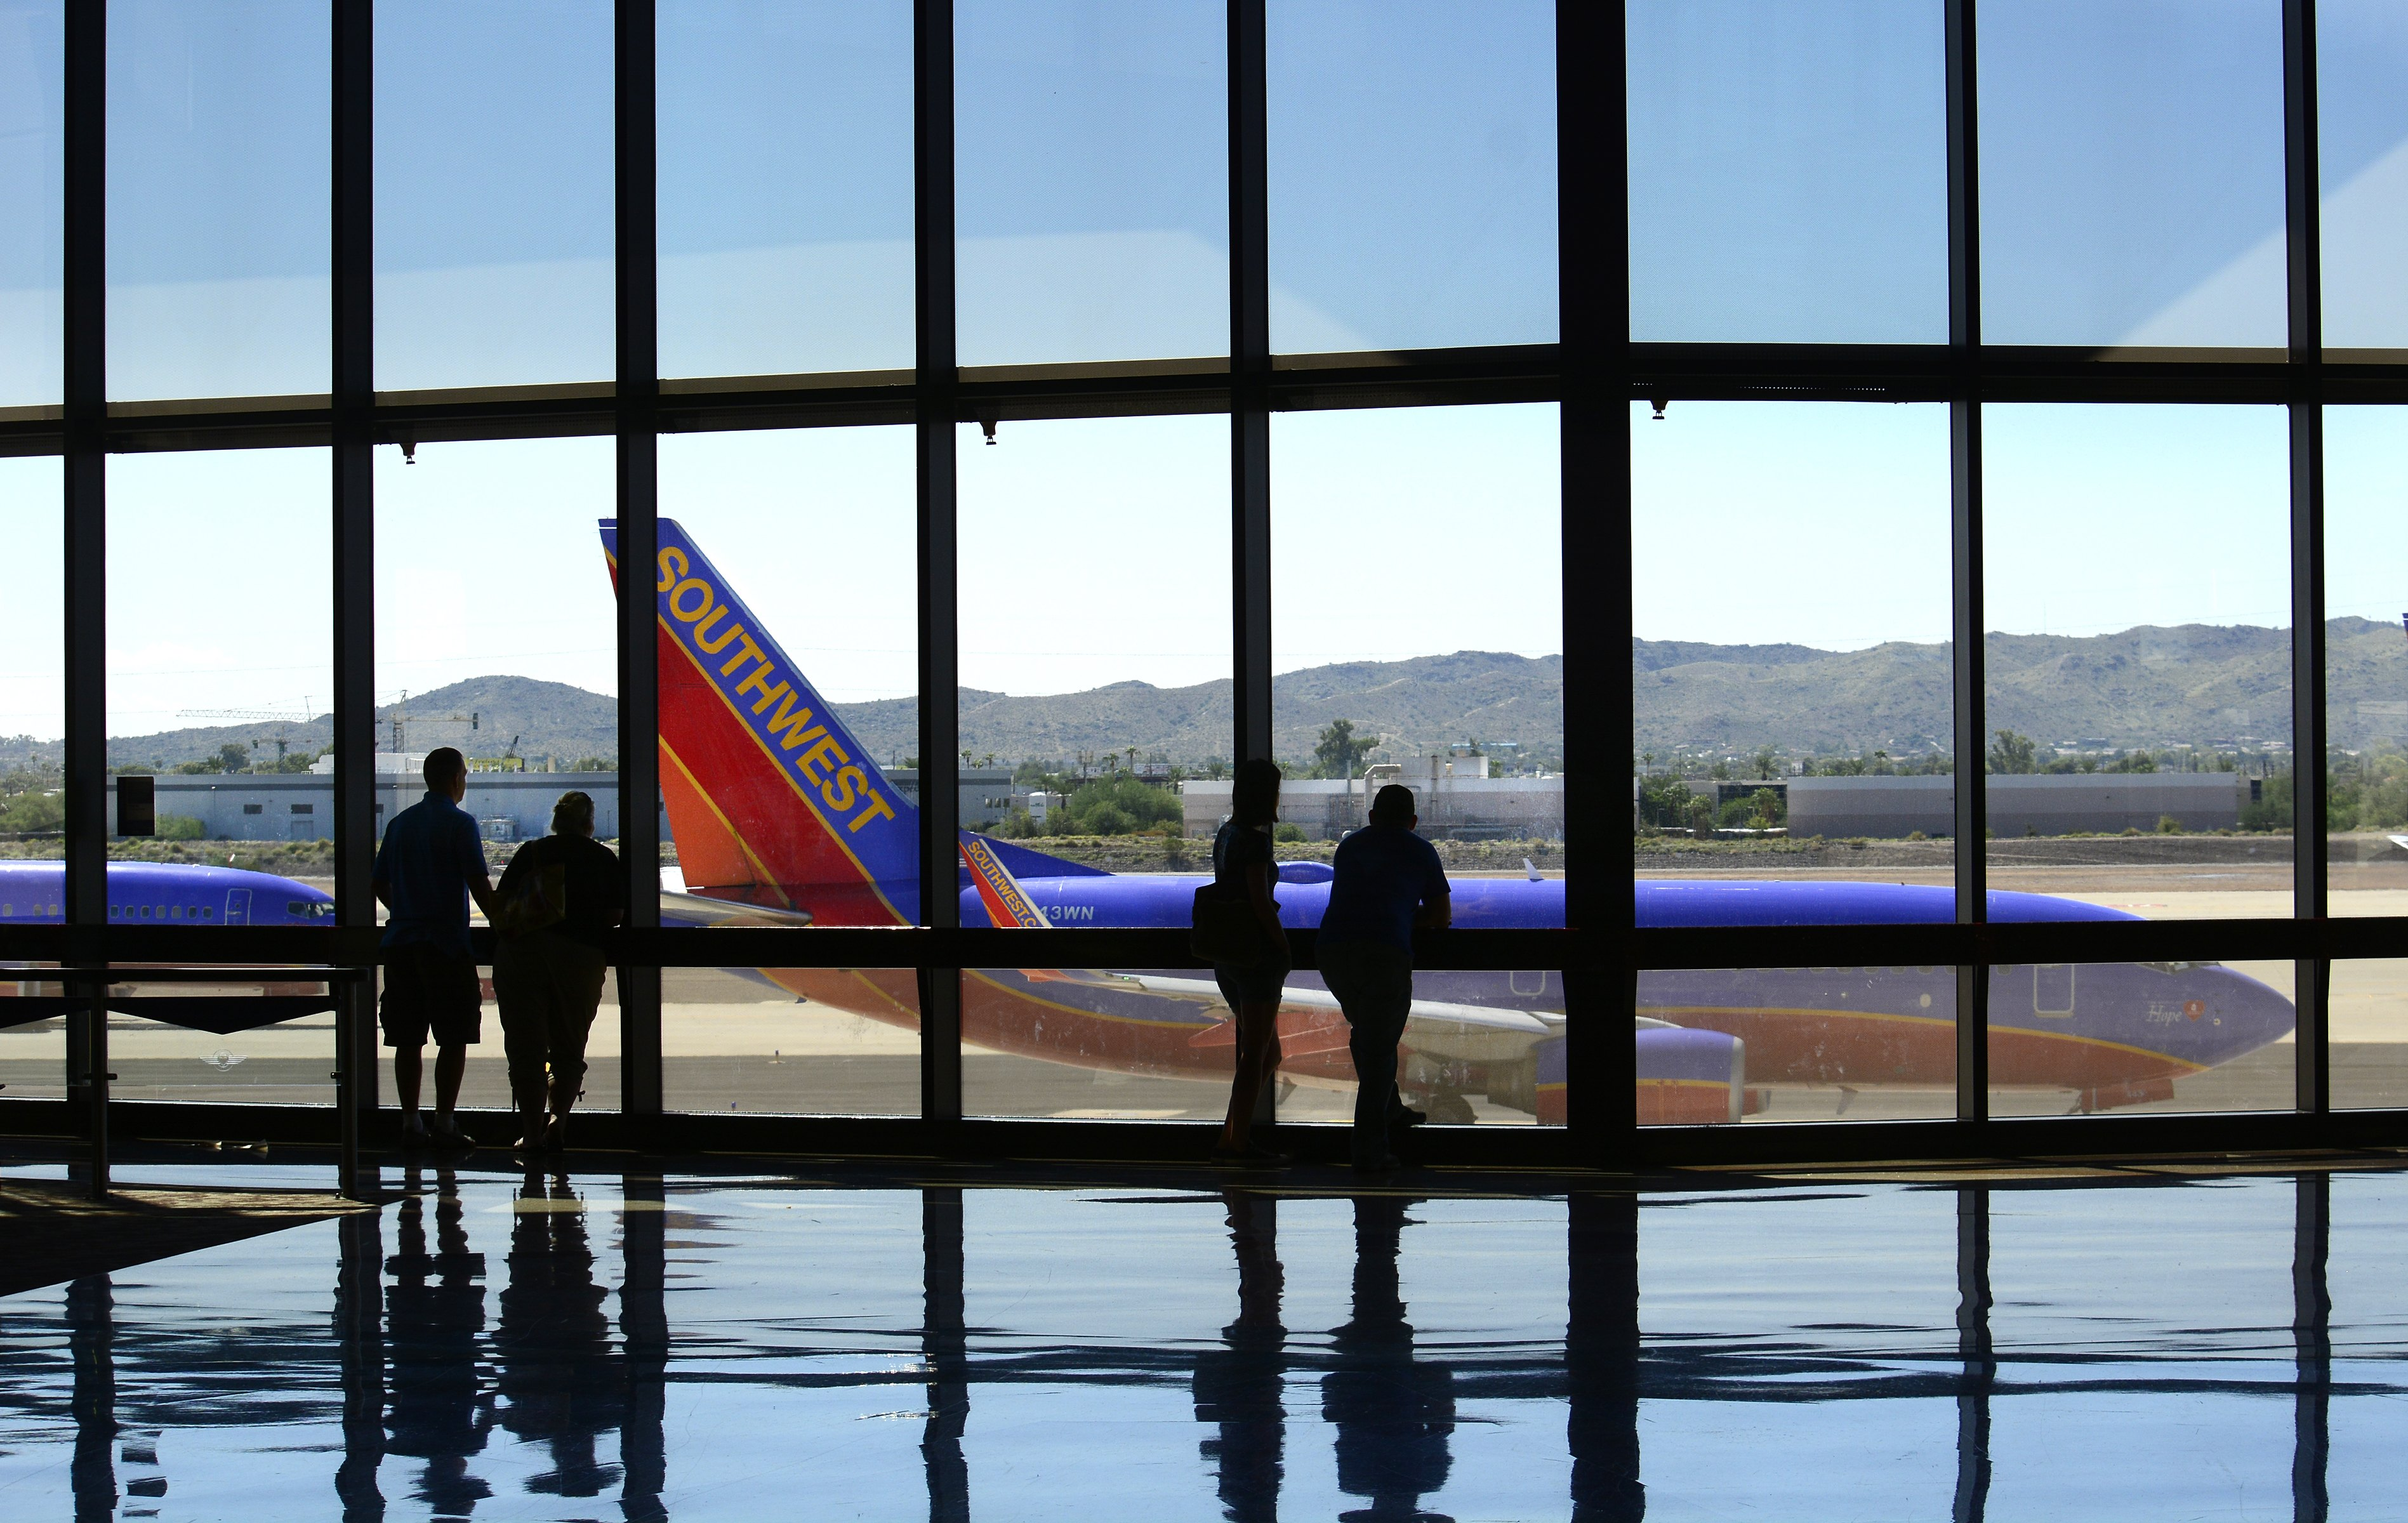 Airline passengers wait for their flights at Phoenix Sky Harbor International Airport.